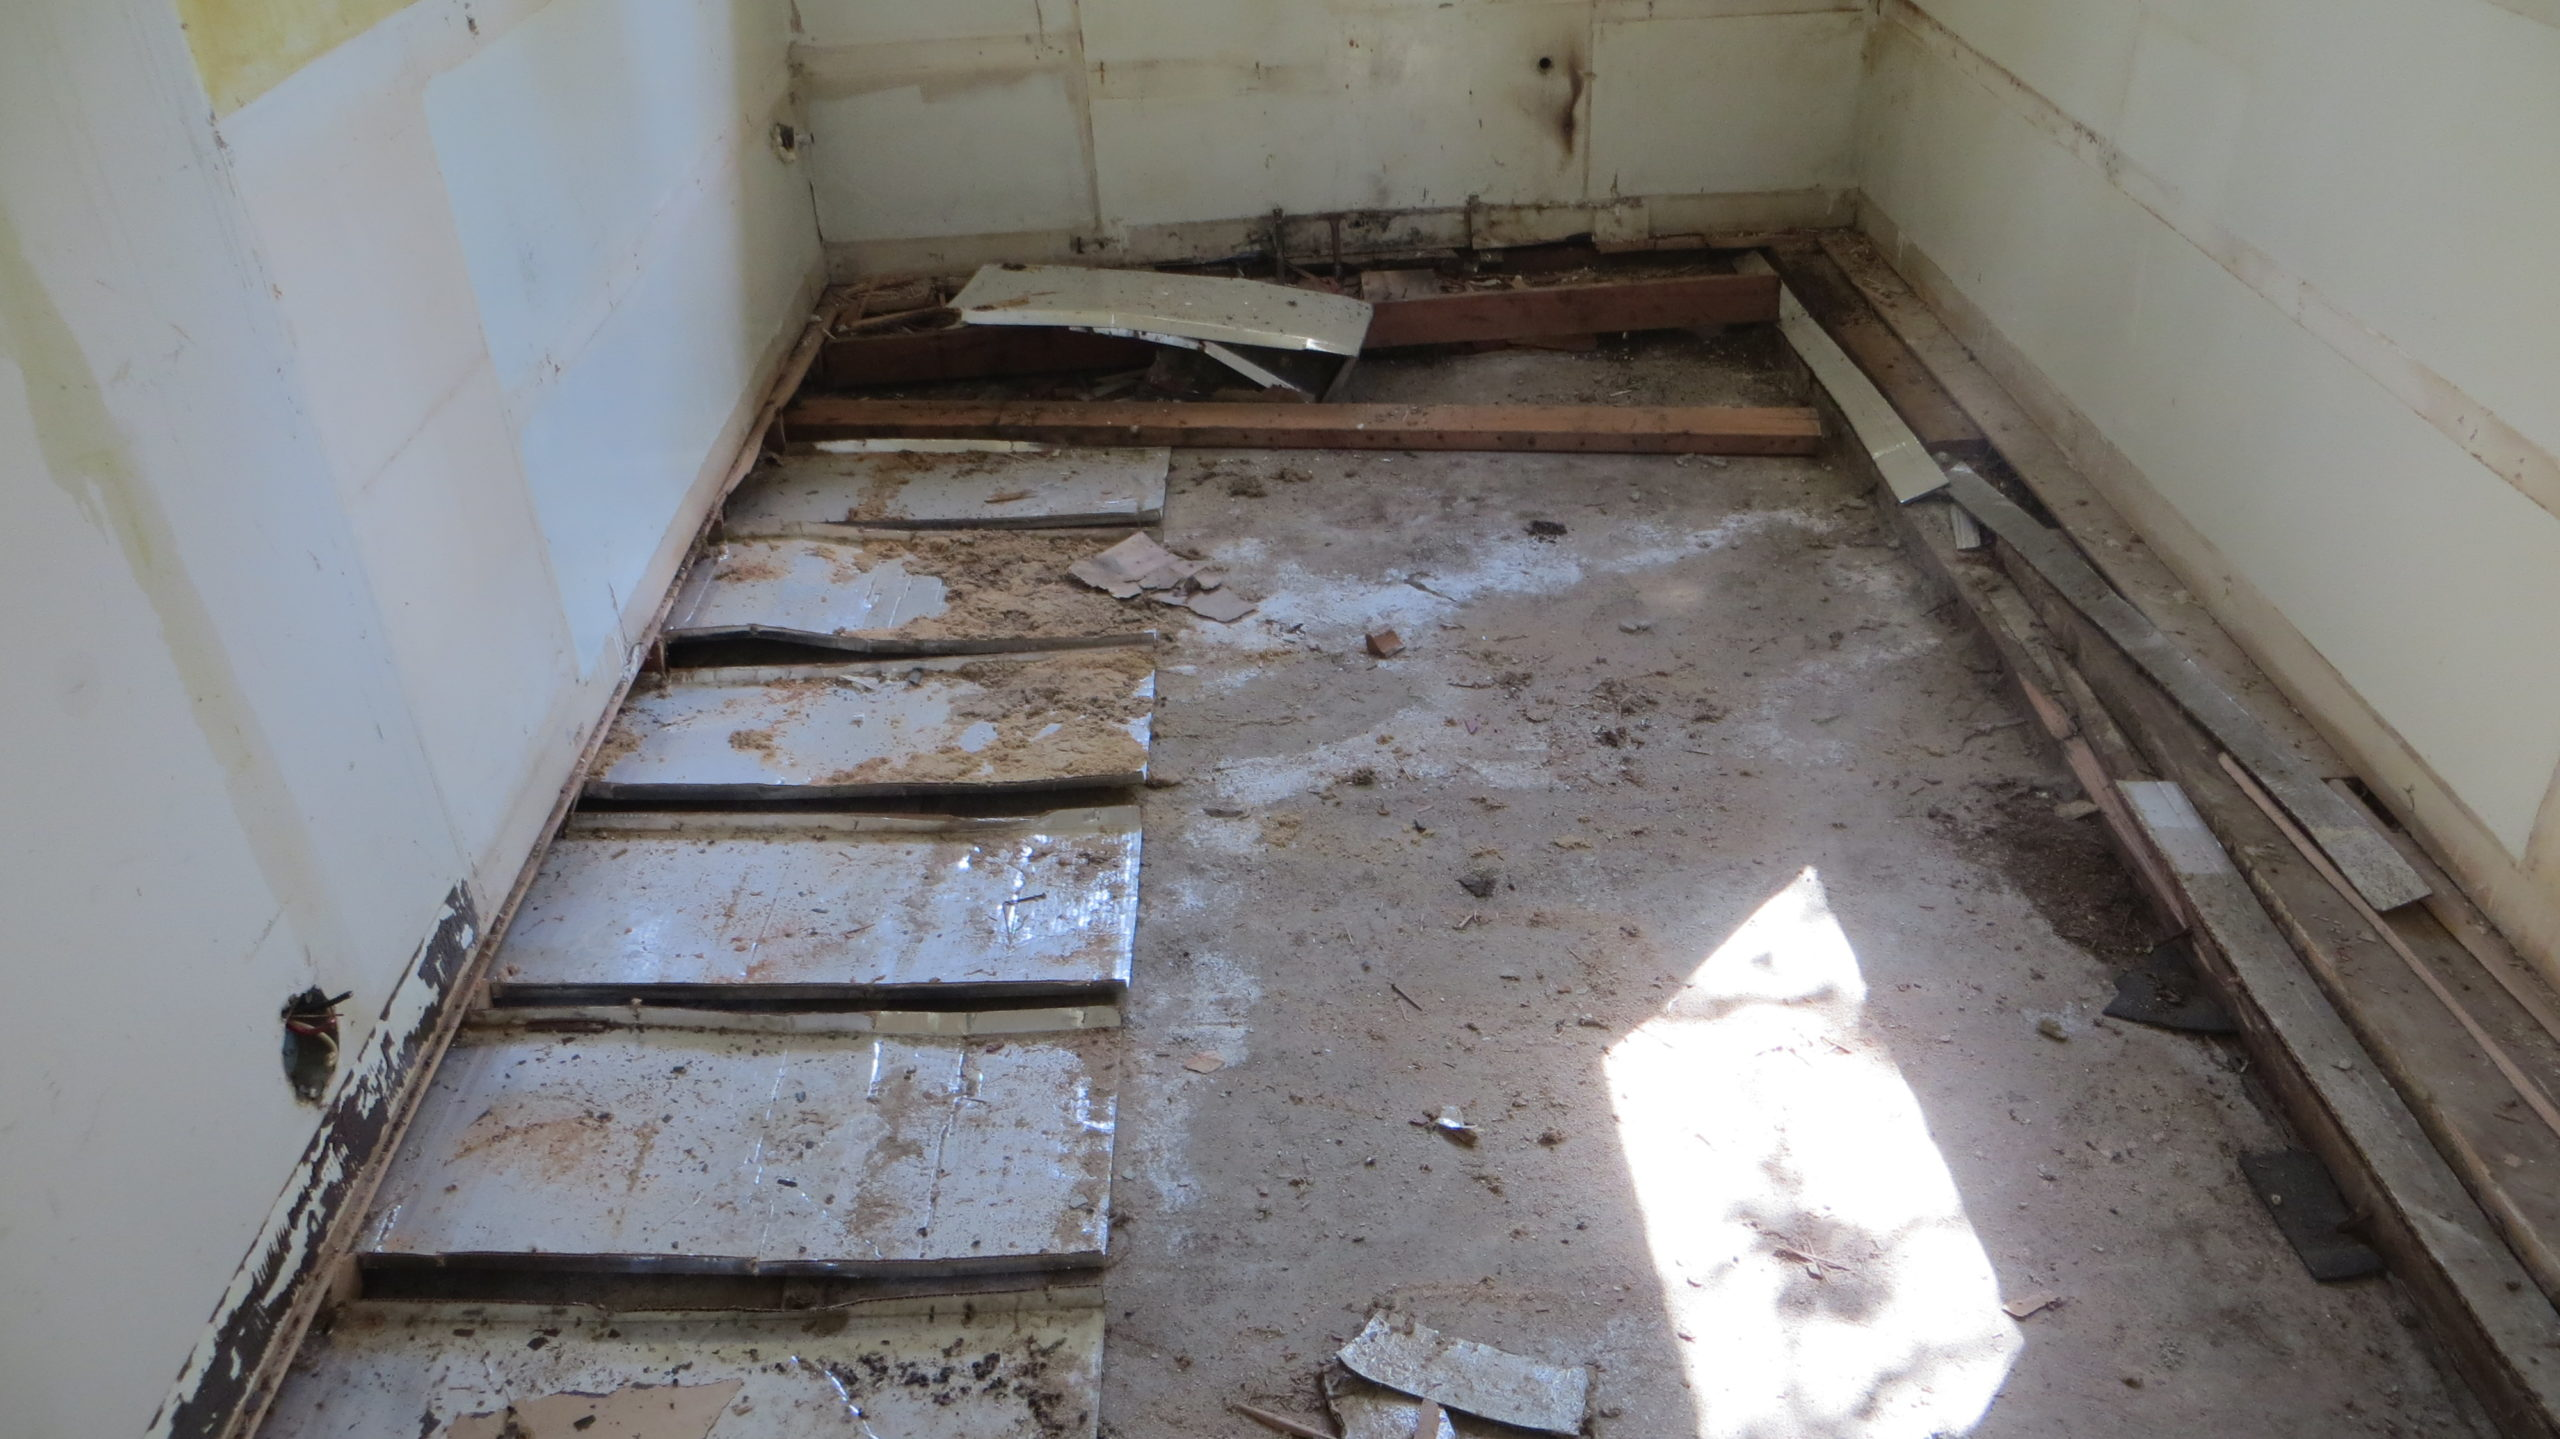 Sub-floor removed - just some cleanup remains